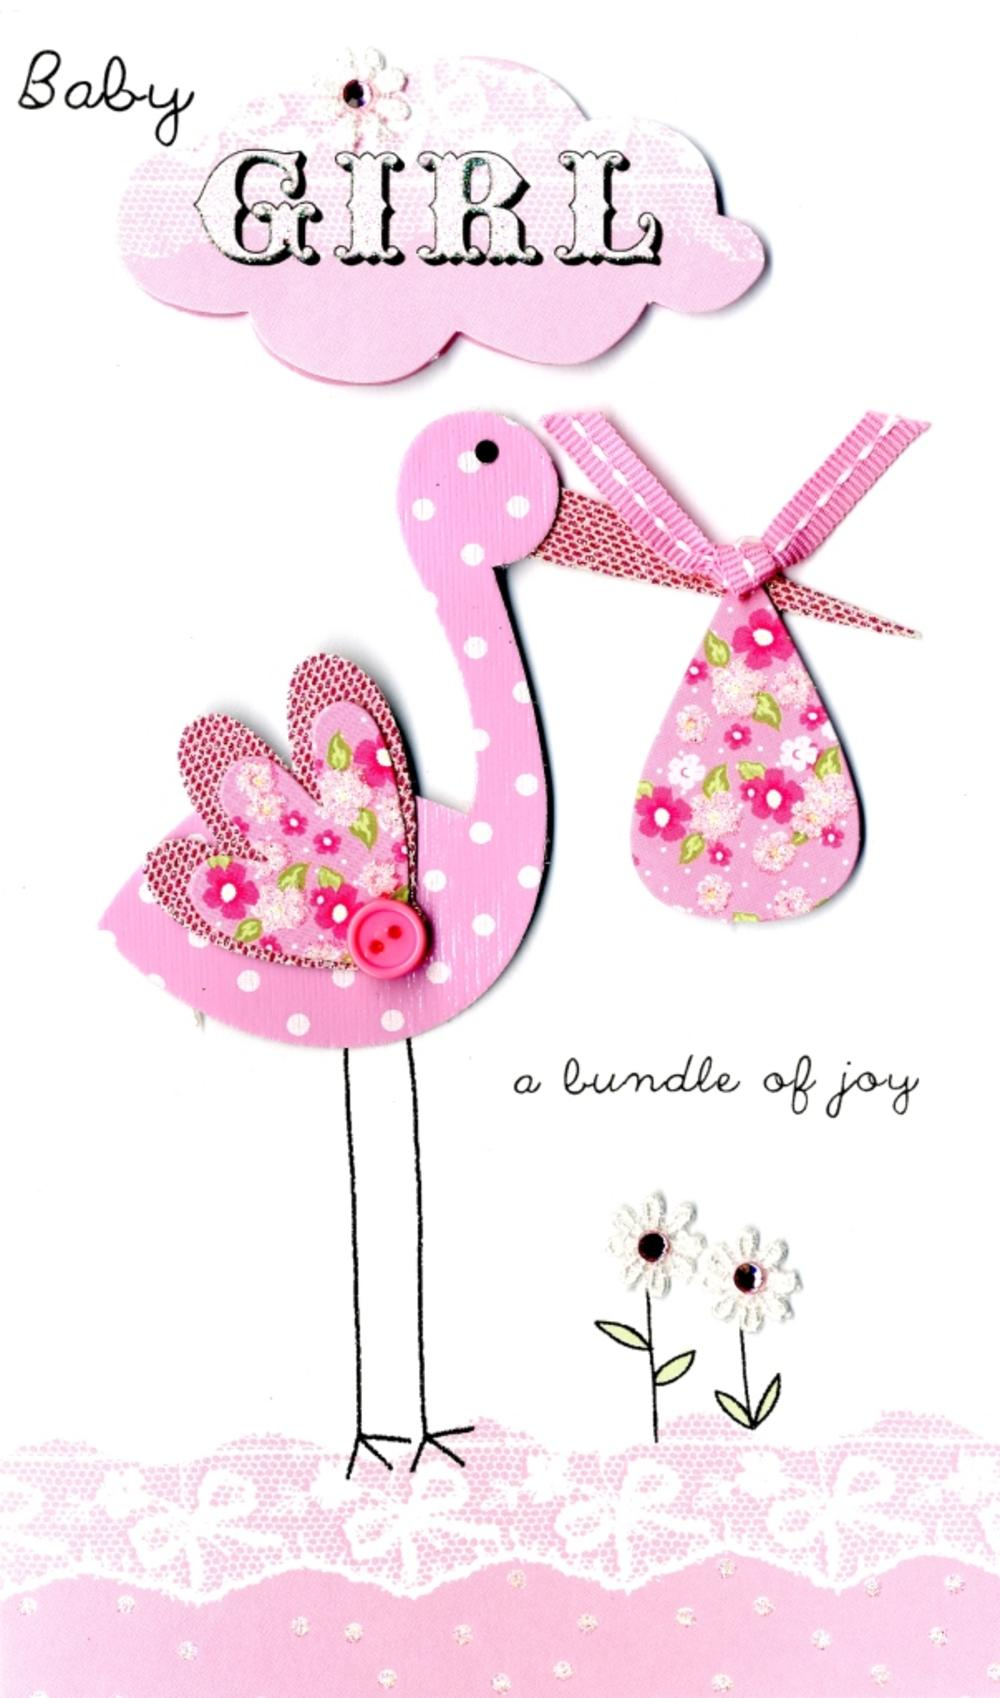 New baby girl stork luxury champagne greeting card cards love kates new baby girl stork luxury champagne greeting card m4hsunfo